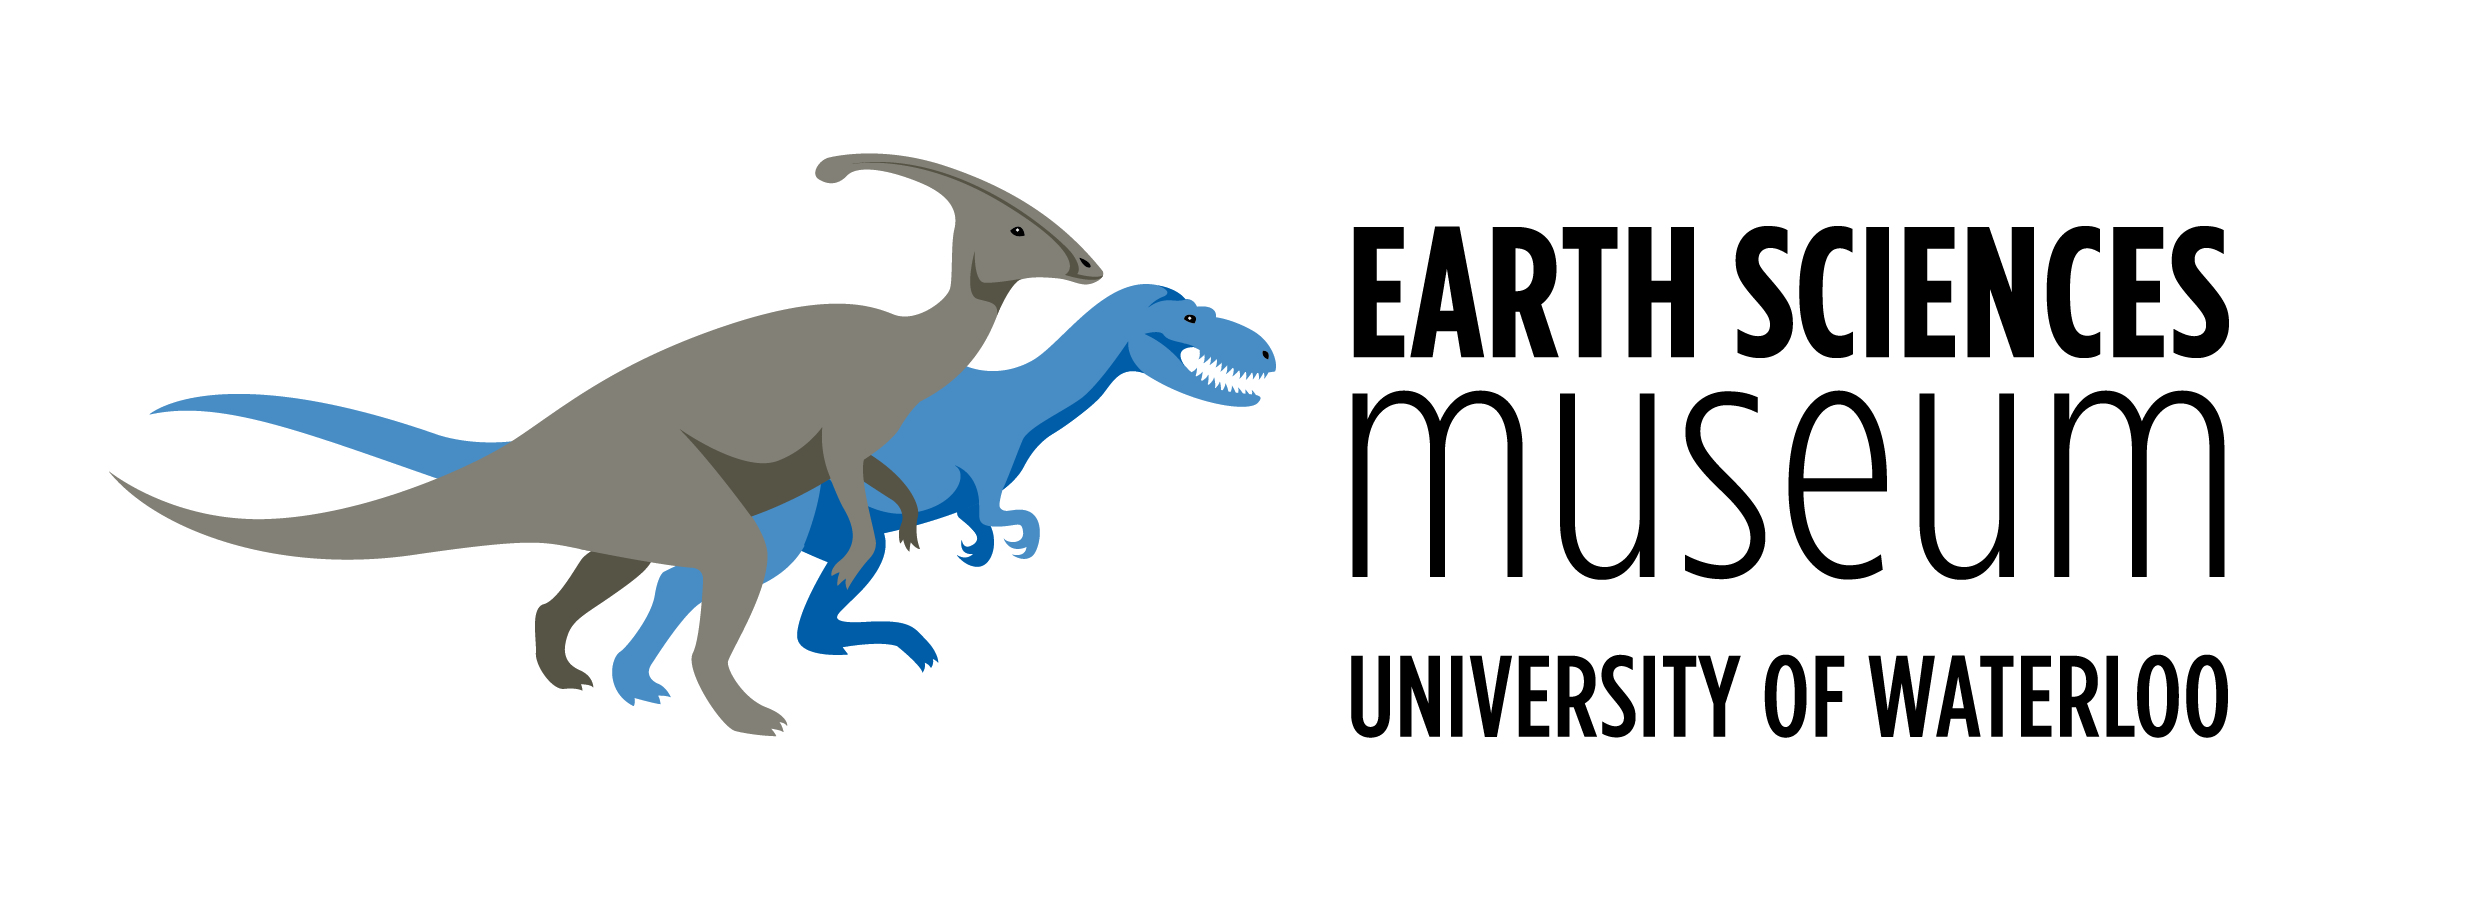 Earth Sciences Museum logo.